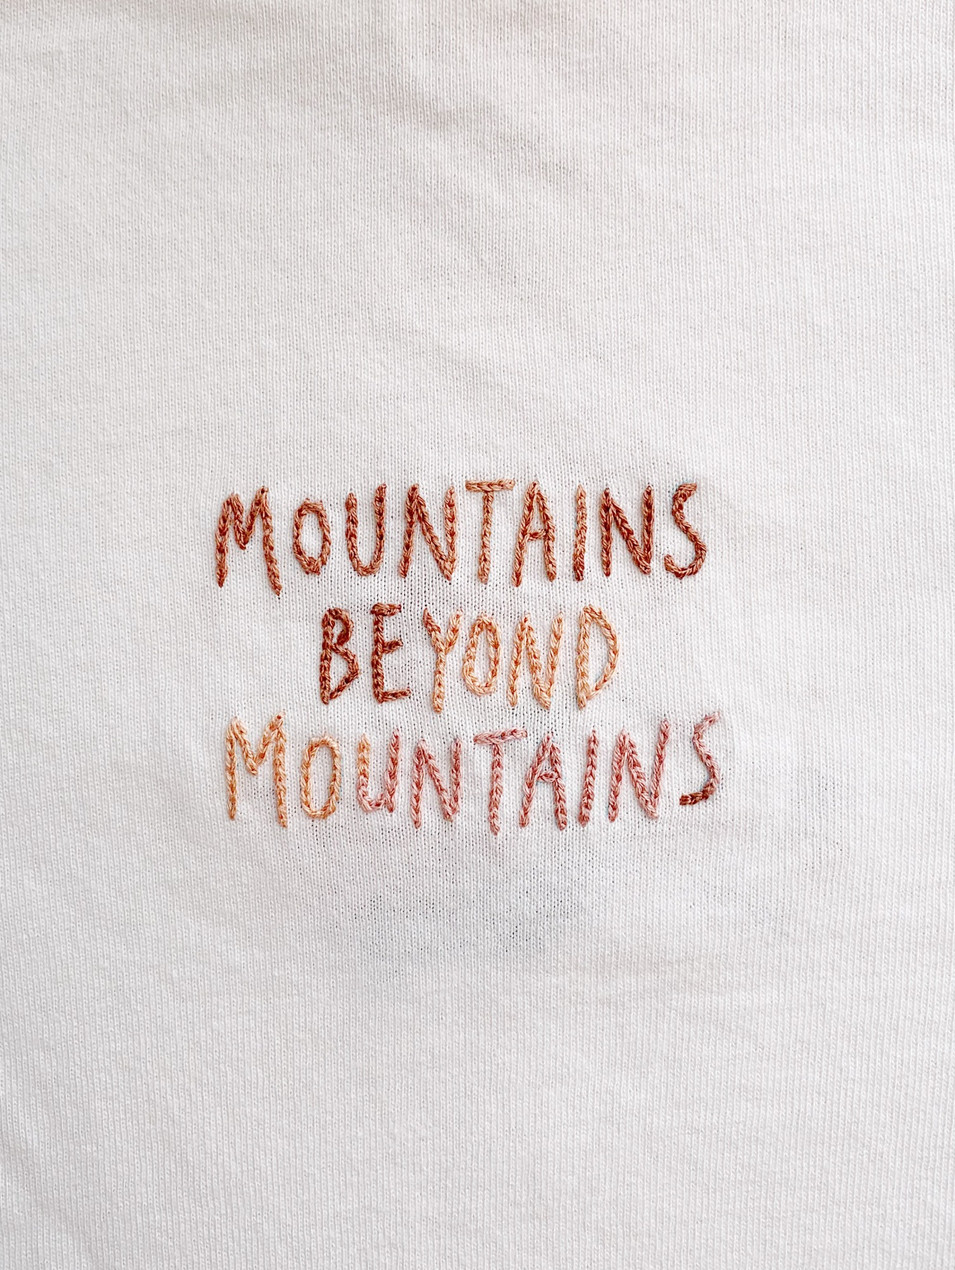 Mountains Embroidery / 2020